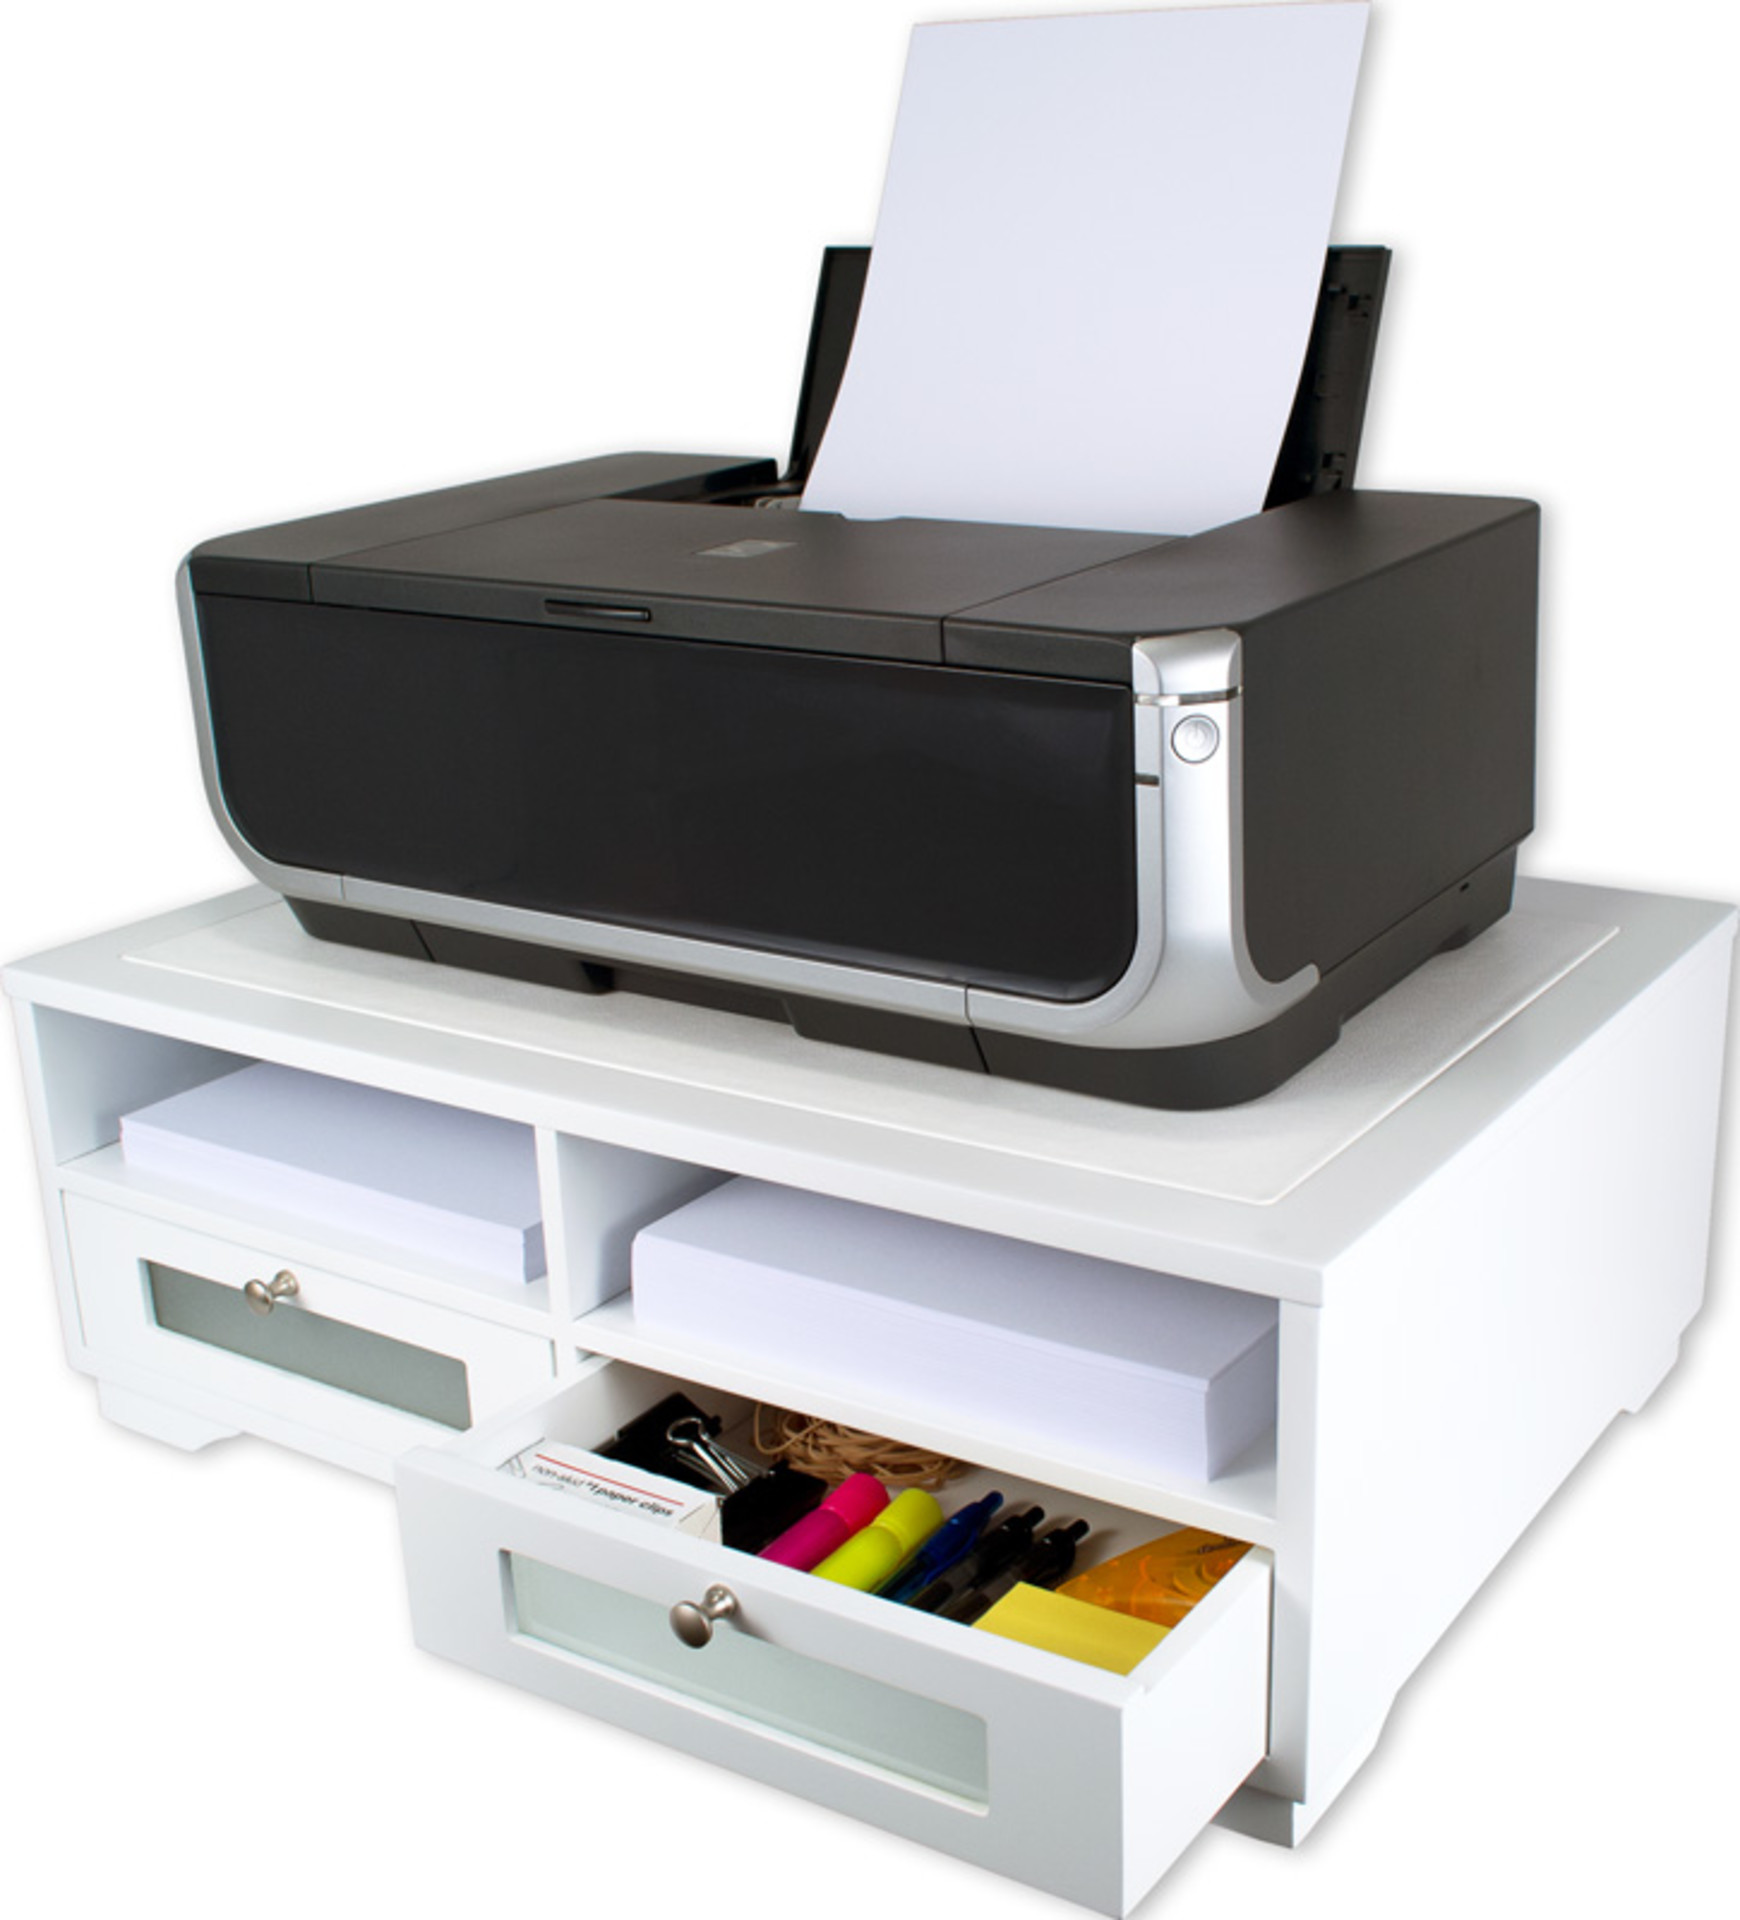 Victor W1130 Pure White Printer Stand